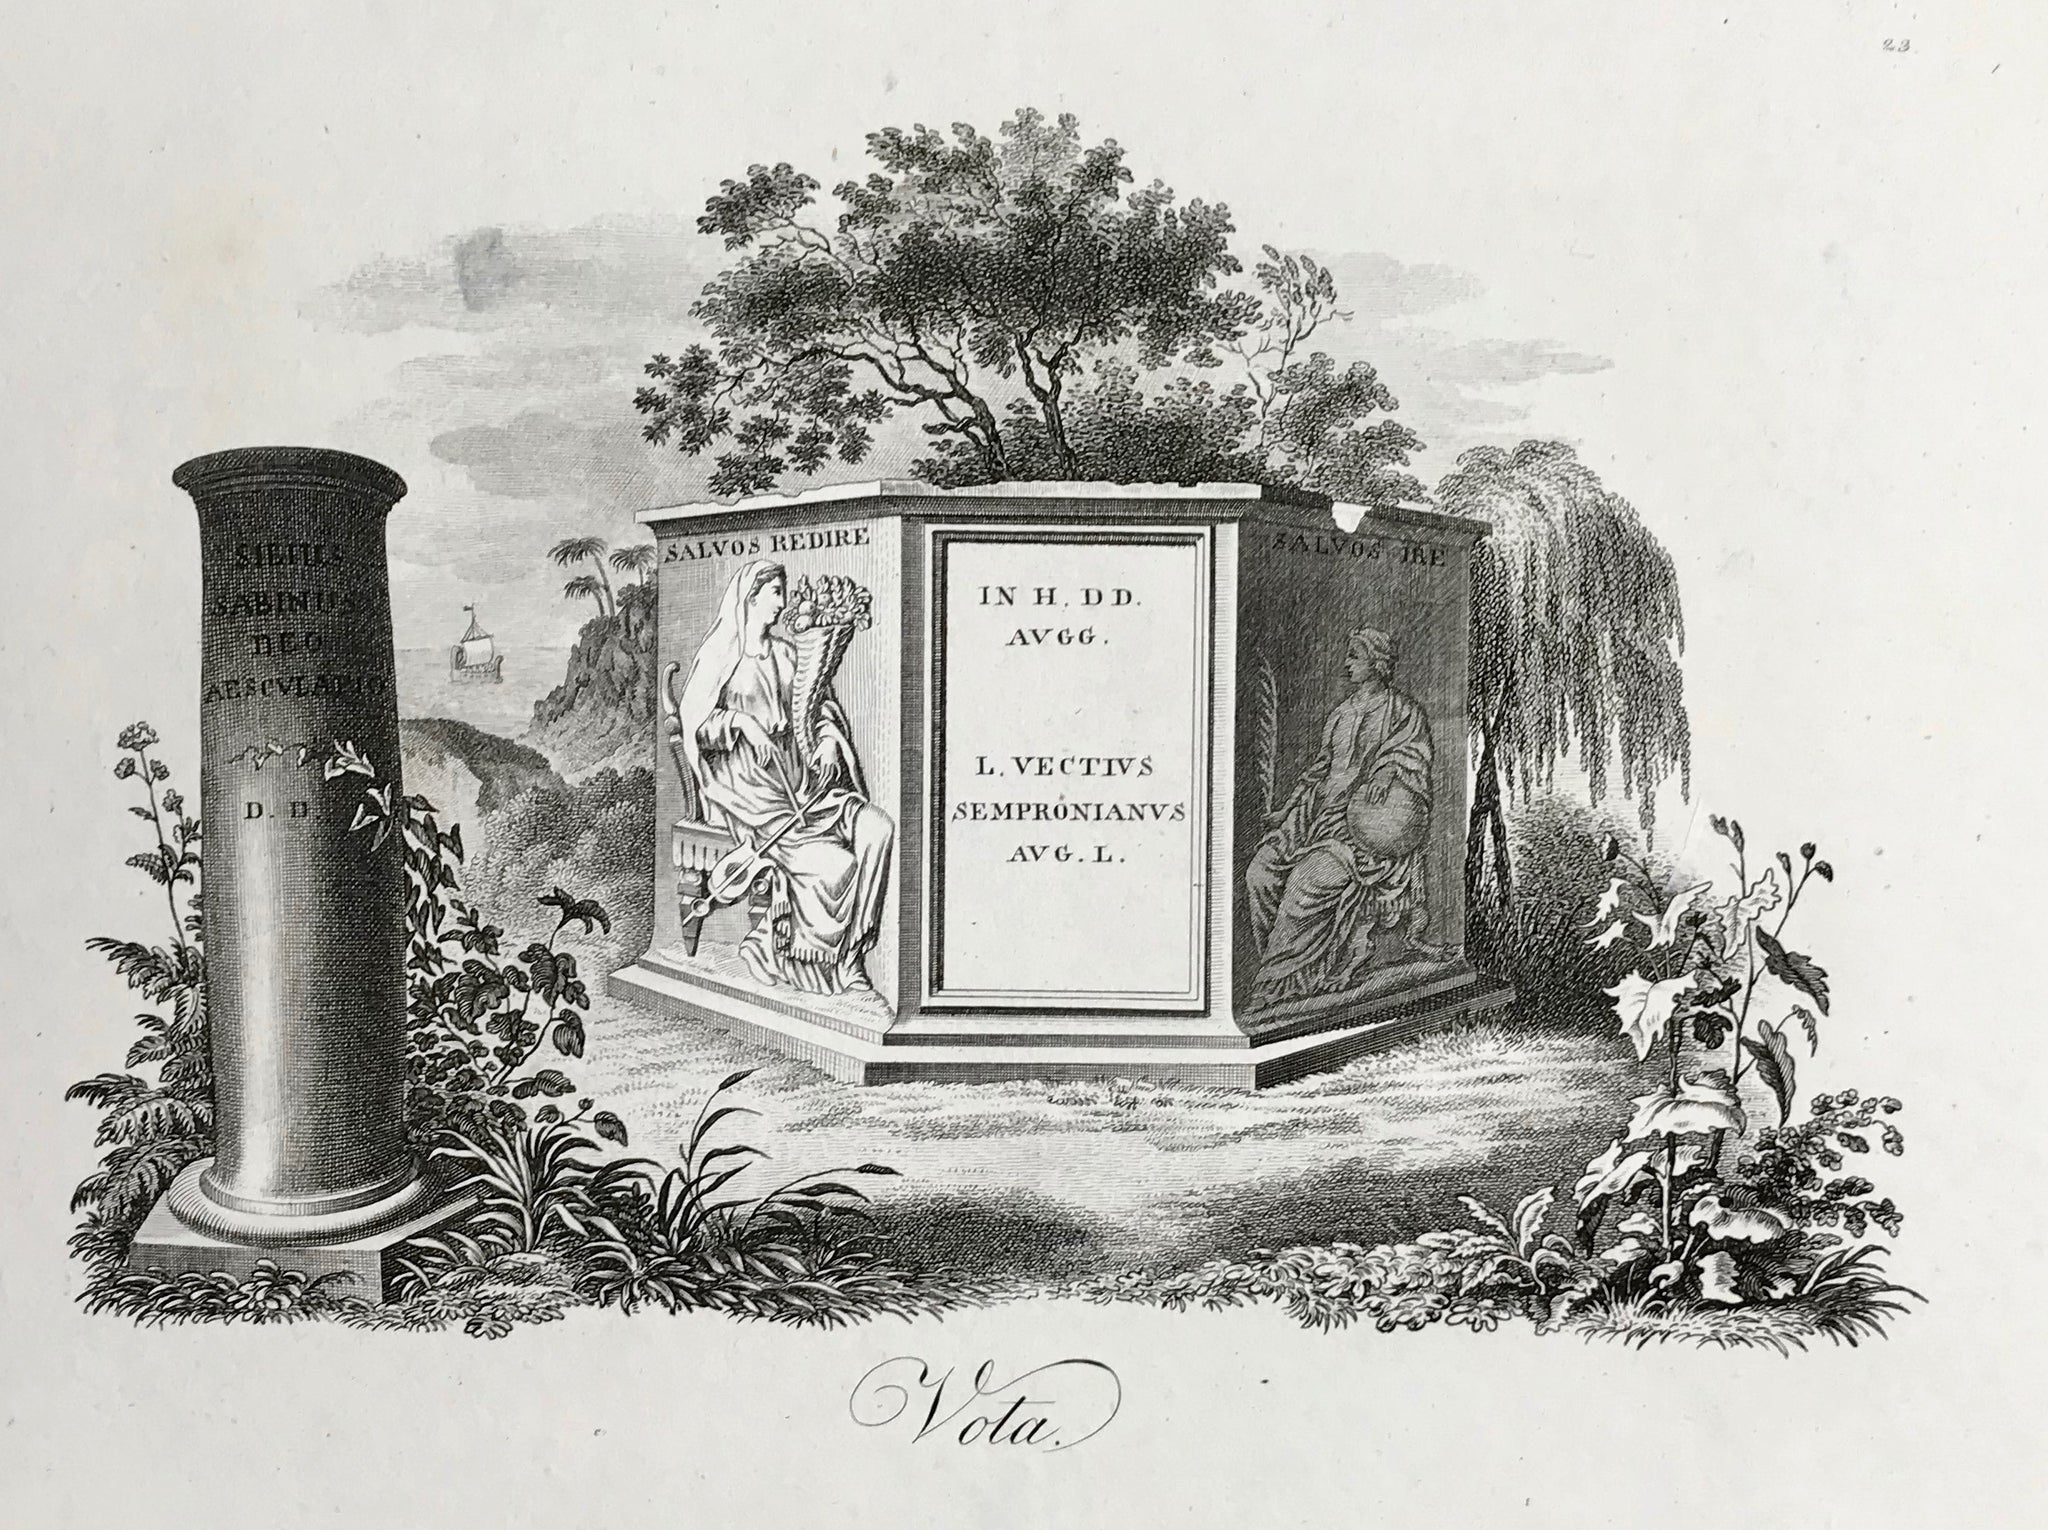 Vota Text on tombstone: SALVOS REDIRE IN HH DD AVGG L VECTIUS SEMPRONIANUS AVG L.